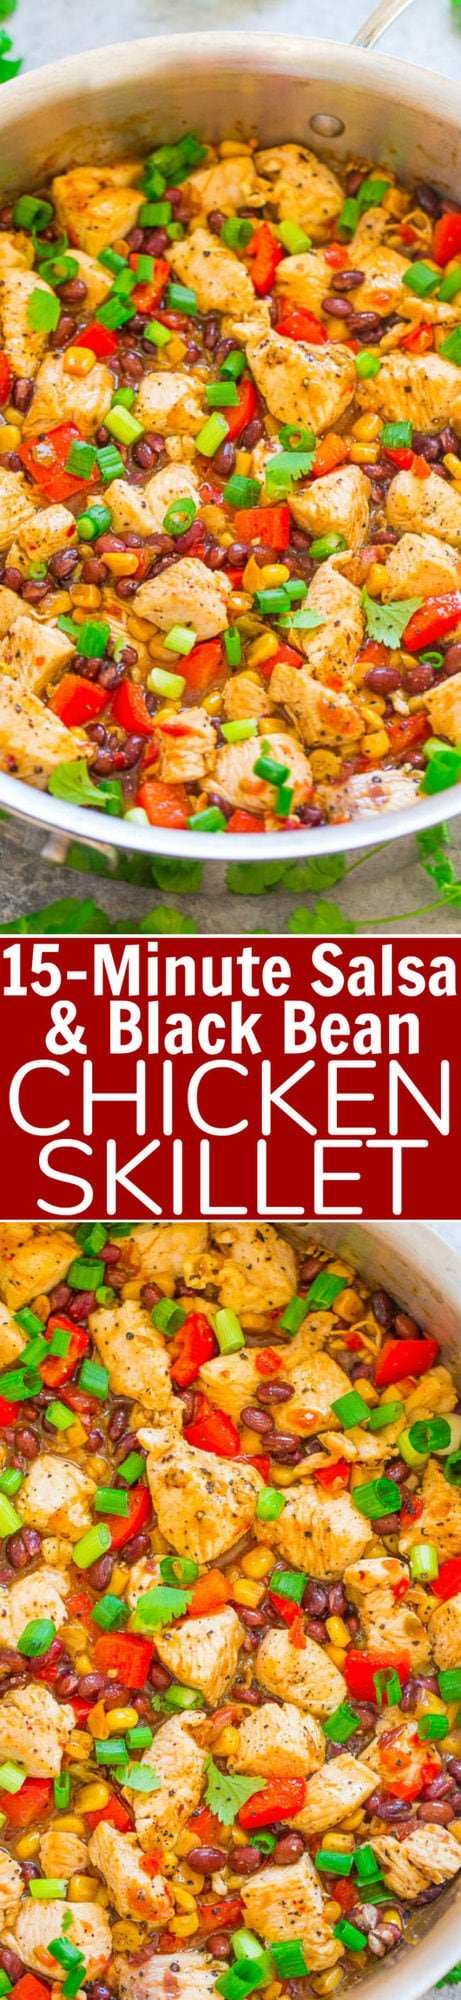 15-Minute Salsa and Black Bean Chicken Skillet - Fast, EASY, family-friendly, healthy yet hearty, naturally gluten-free, Mexican-inspired meal!! The PERFECT recipe to jazz up your usual weeknight chicken dinner!!